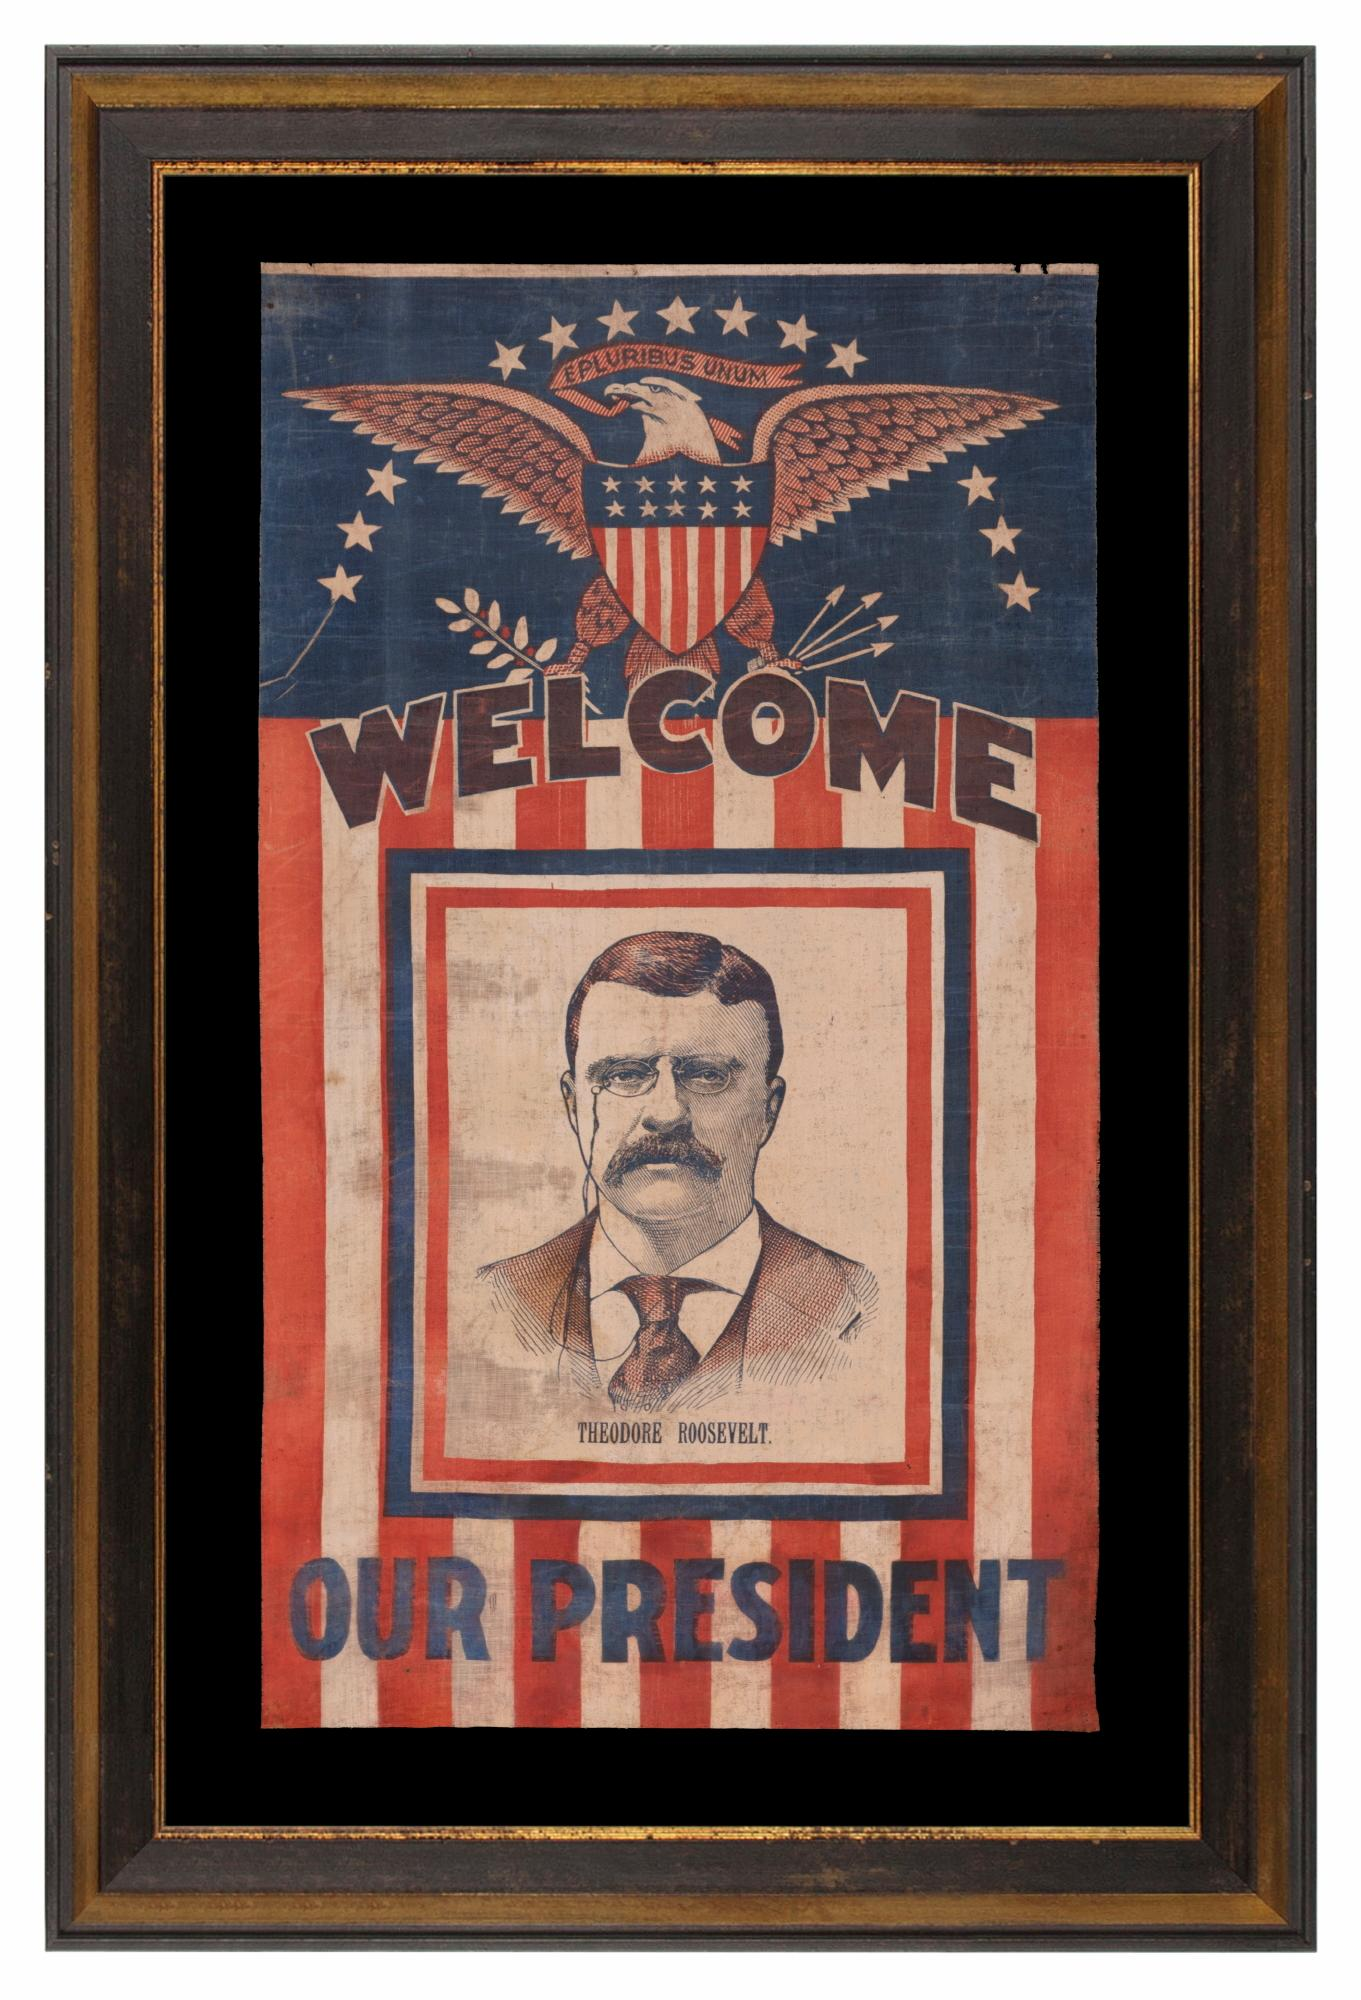 Teddy Roosevelt Parade Style Banner Likely Make for the 1912 Campaign